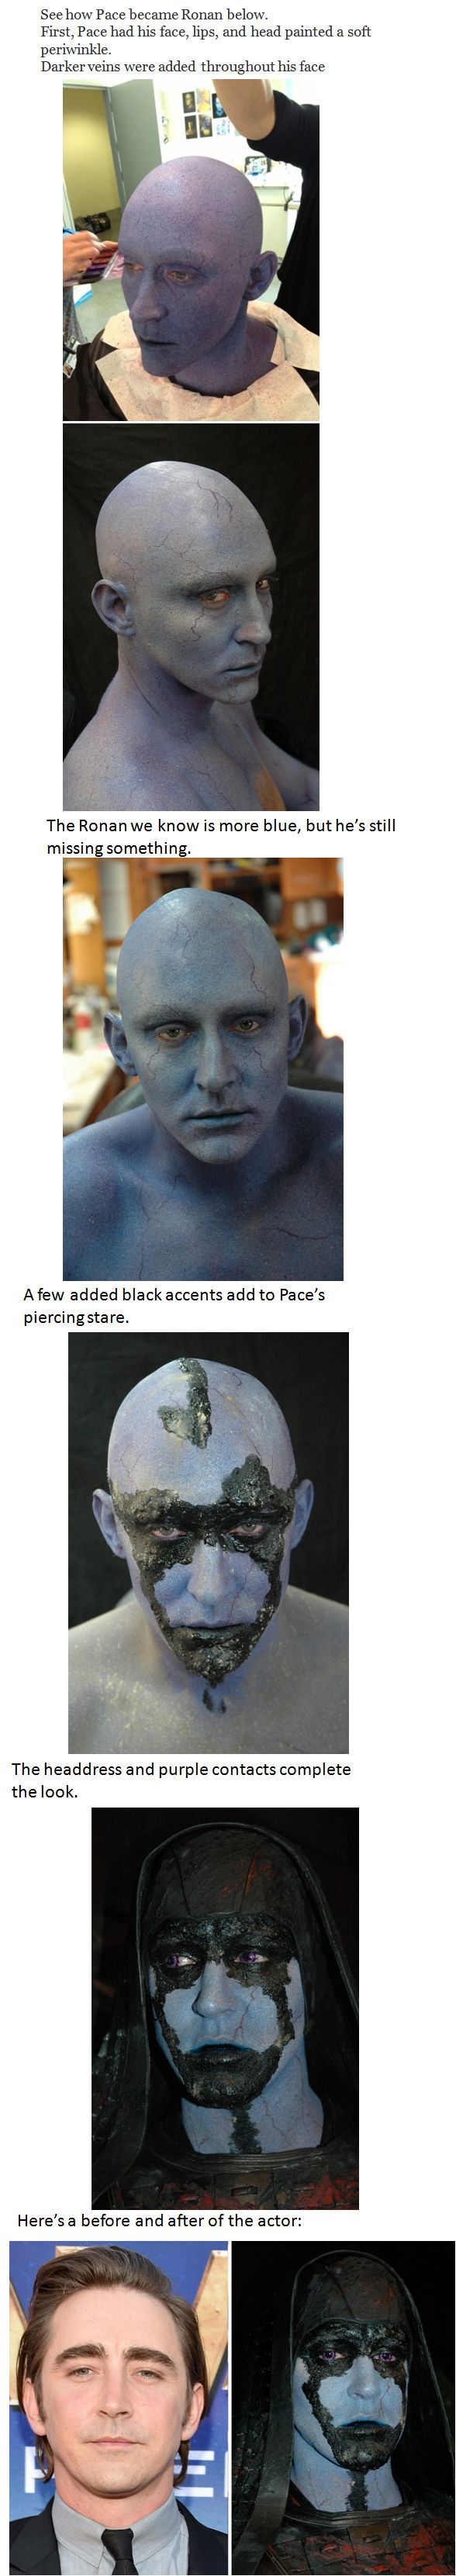 Lee Pace undergoes transformation to play Ronan the Accuer in Marvel's Guardians of the Galaxy.